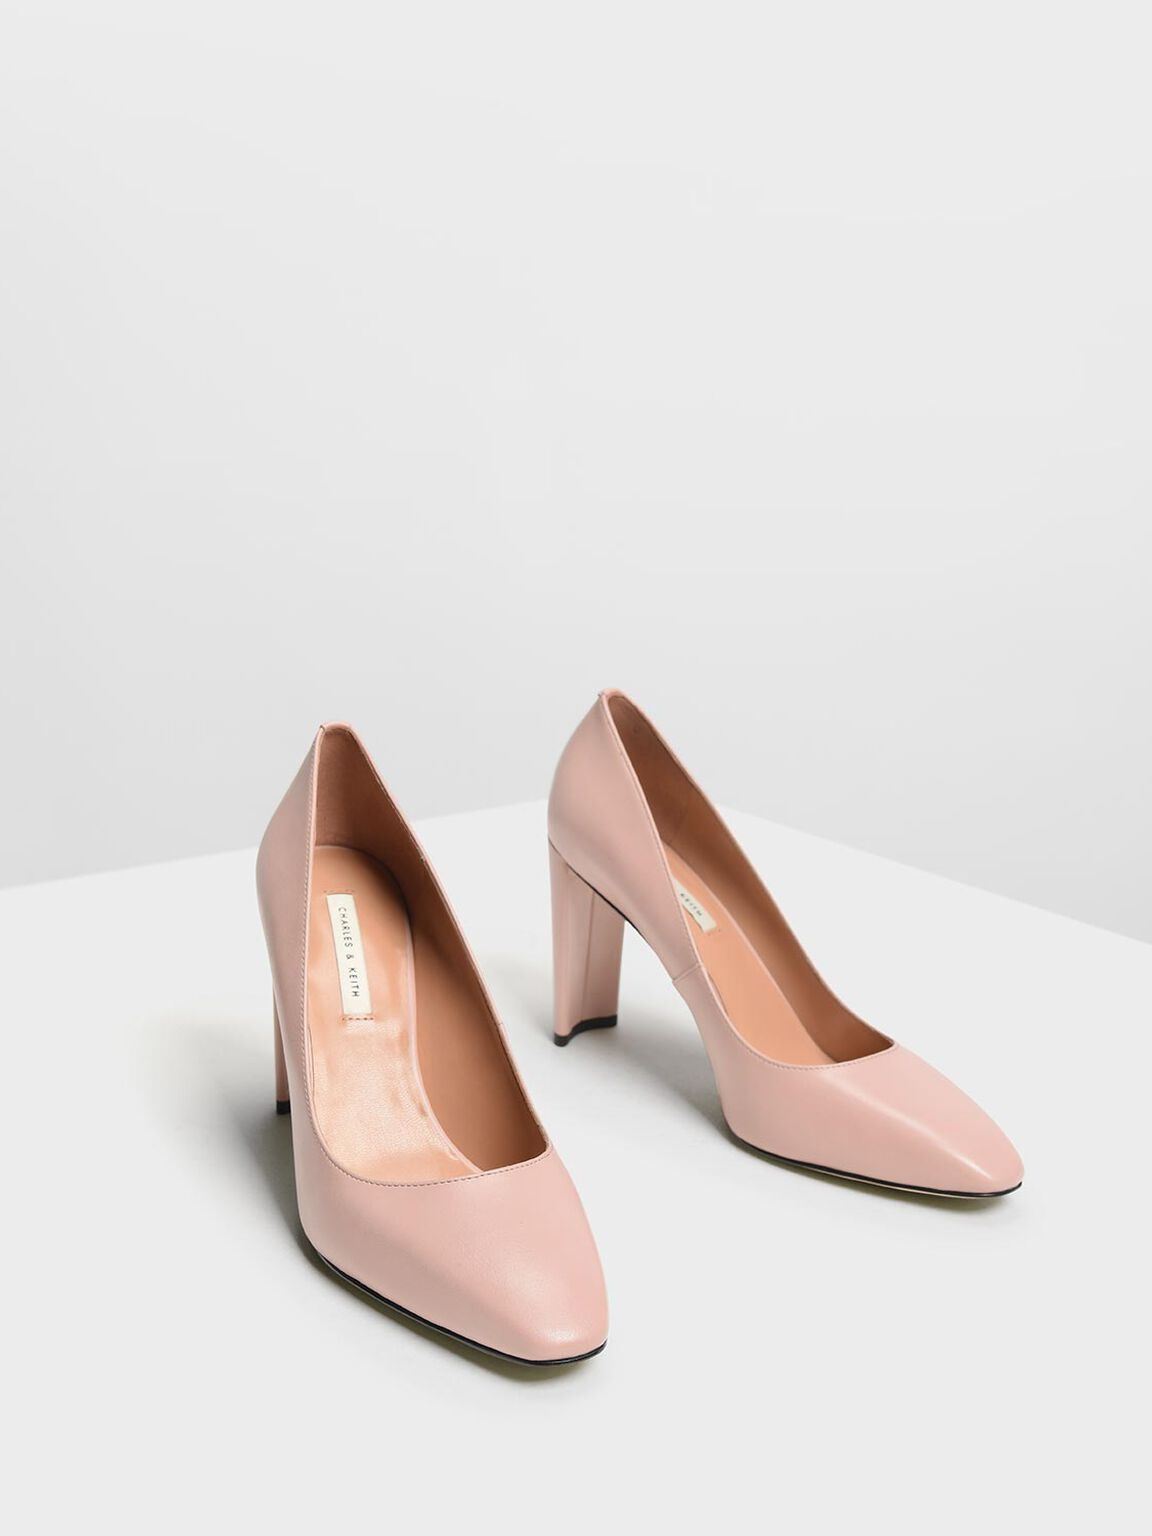 Blade Heel Pumps, Blush, hi-res